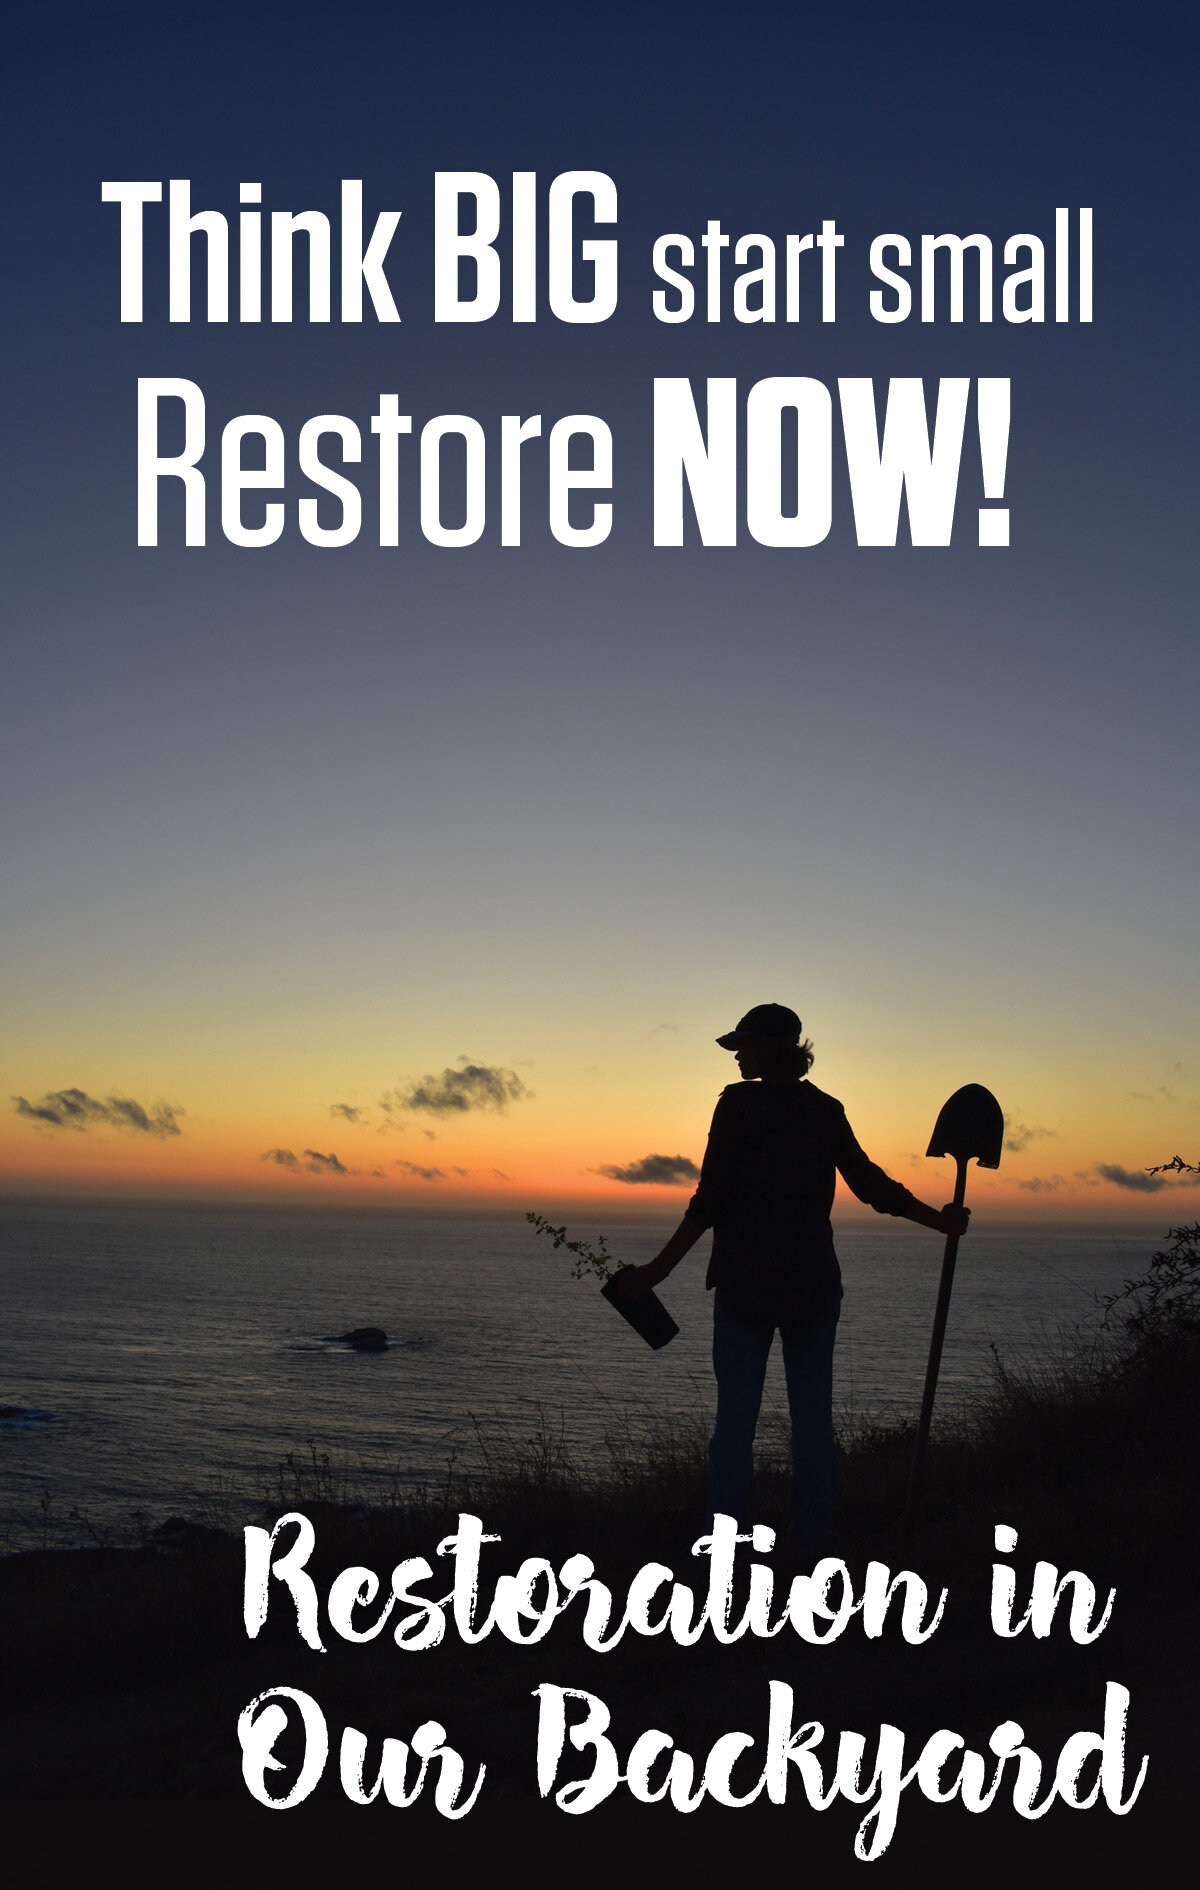 The conference will take place in beautiful Carmel Valley at the Monterey Peninsula Regional Park District's recently acquired Rancho Cañada Golf Club, where you will see firsthand the initial steps of reclaiming a 400-acre golf course back toward natural habitat and community open space.